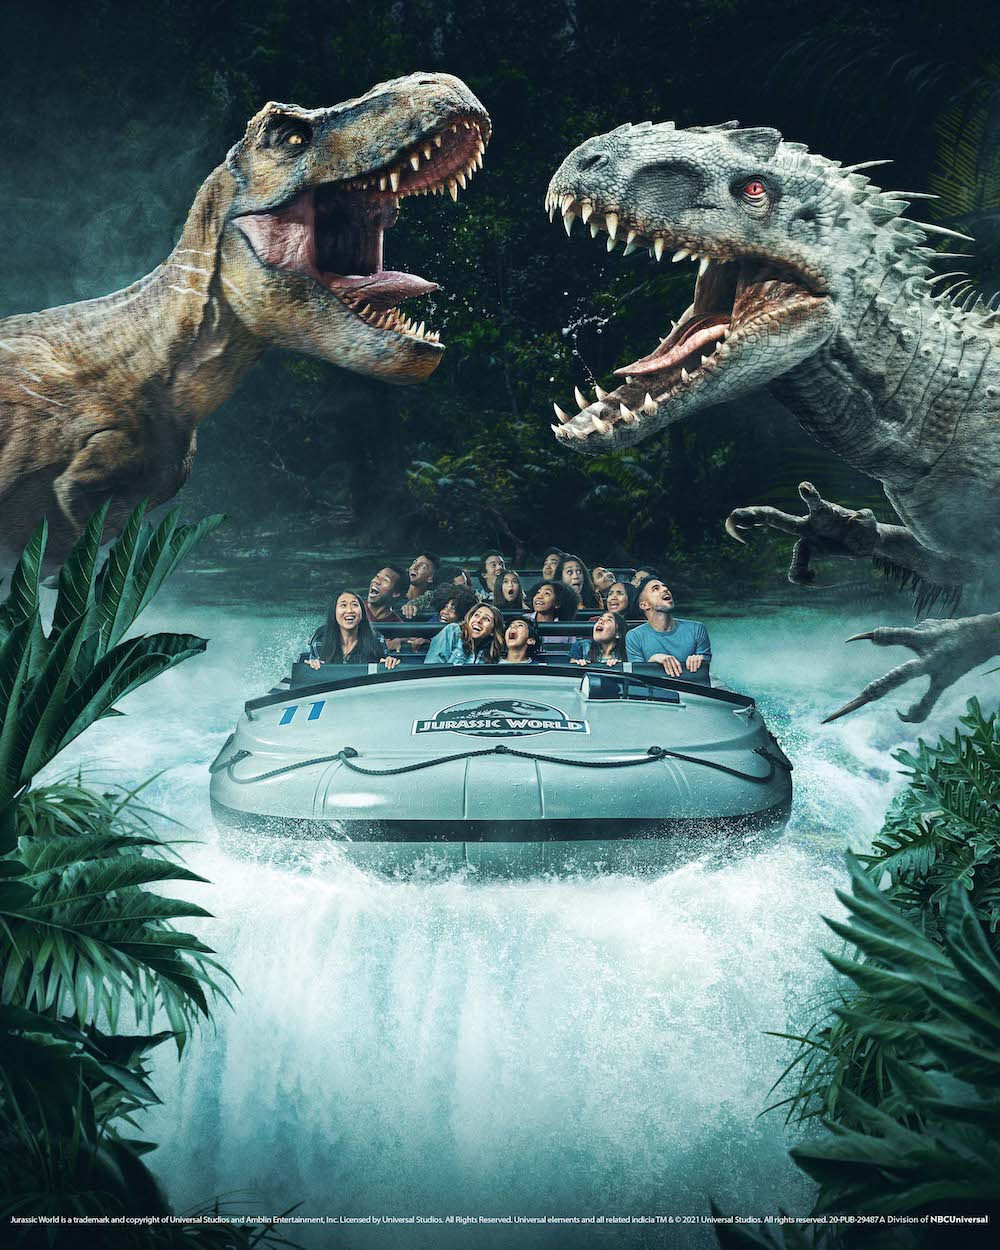 """Universal Studios Hollywood brings guests face-to-face with """"Jurassic World"""